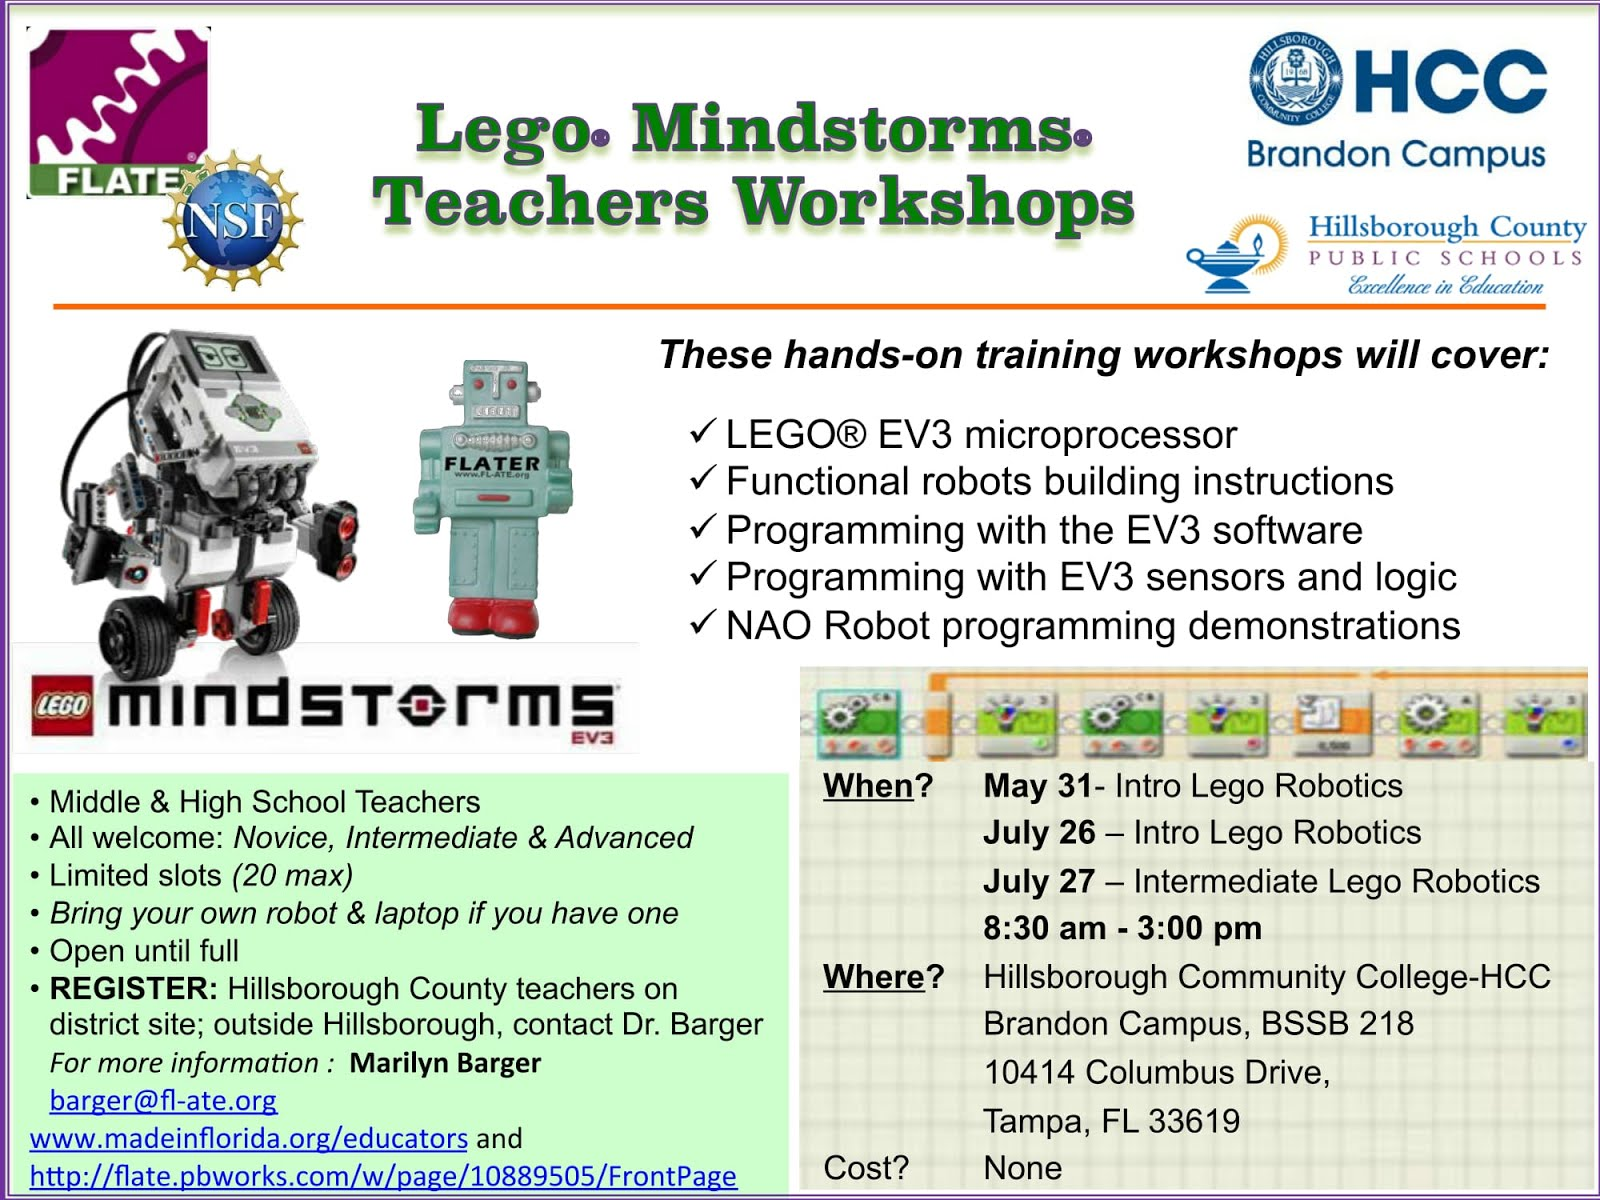 Lego Mindstorms Workshops for Teachers this Summer